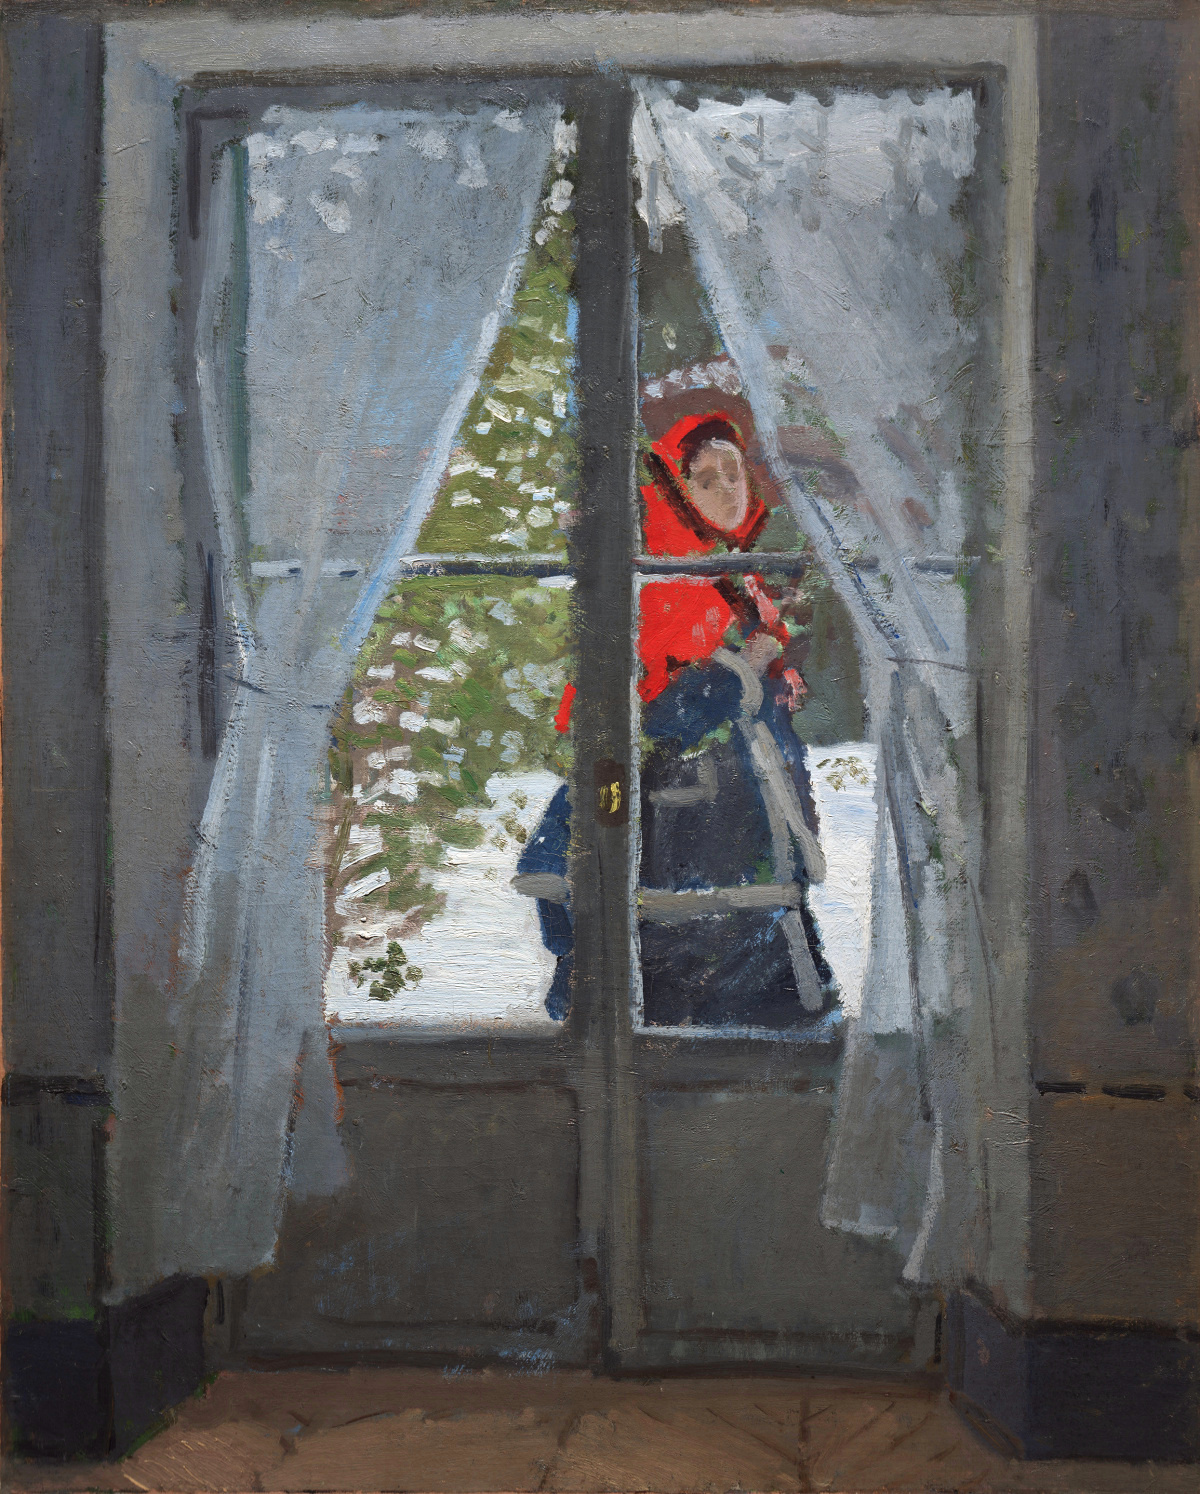 Claude Monet - Madame Monet or The Red Cape 1870